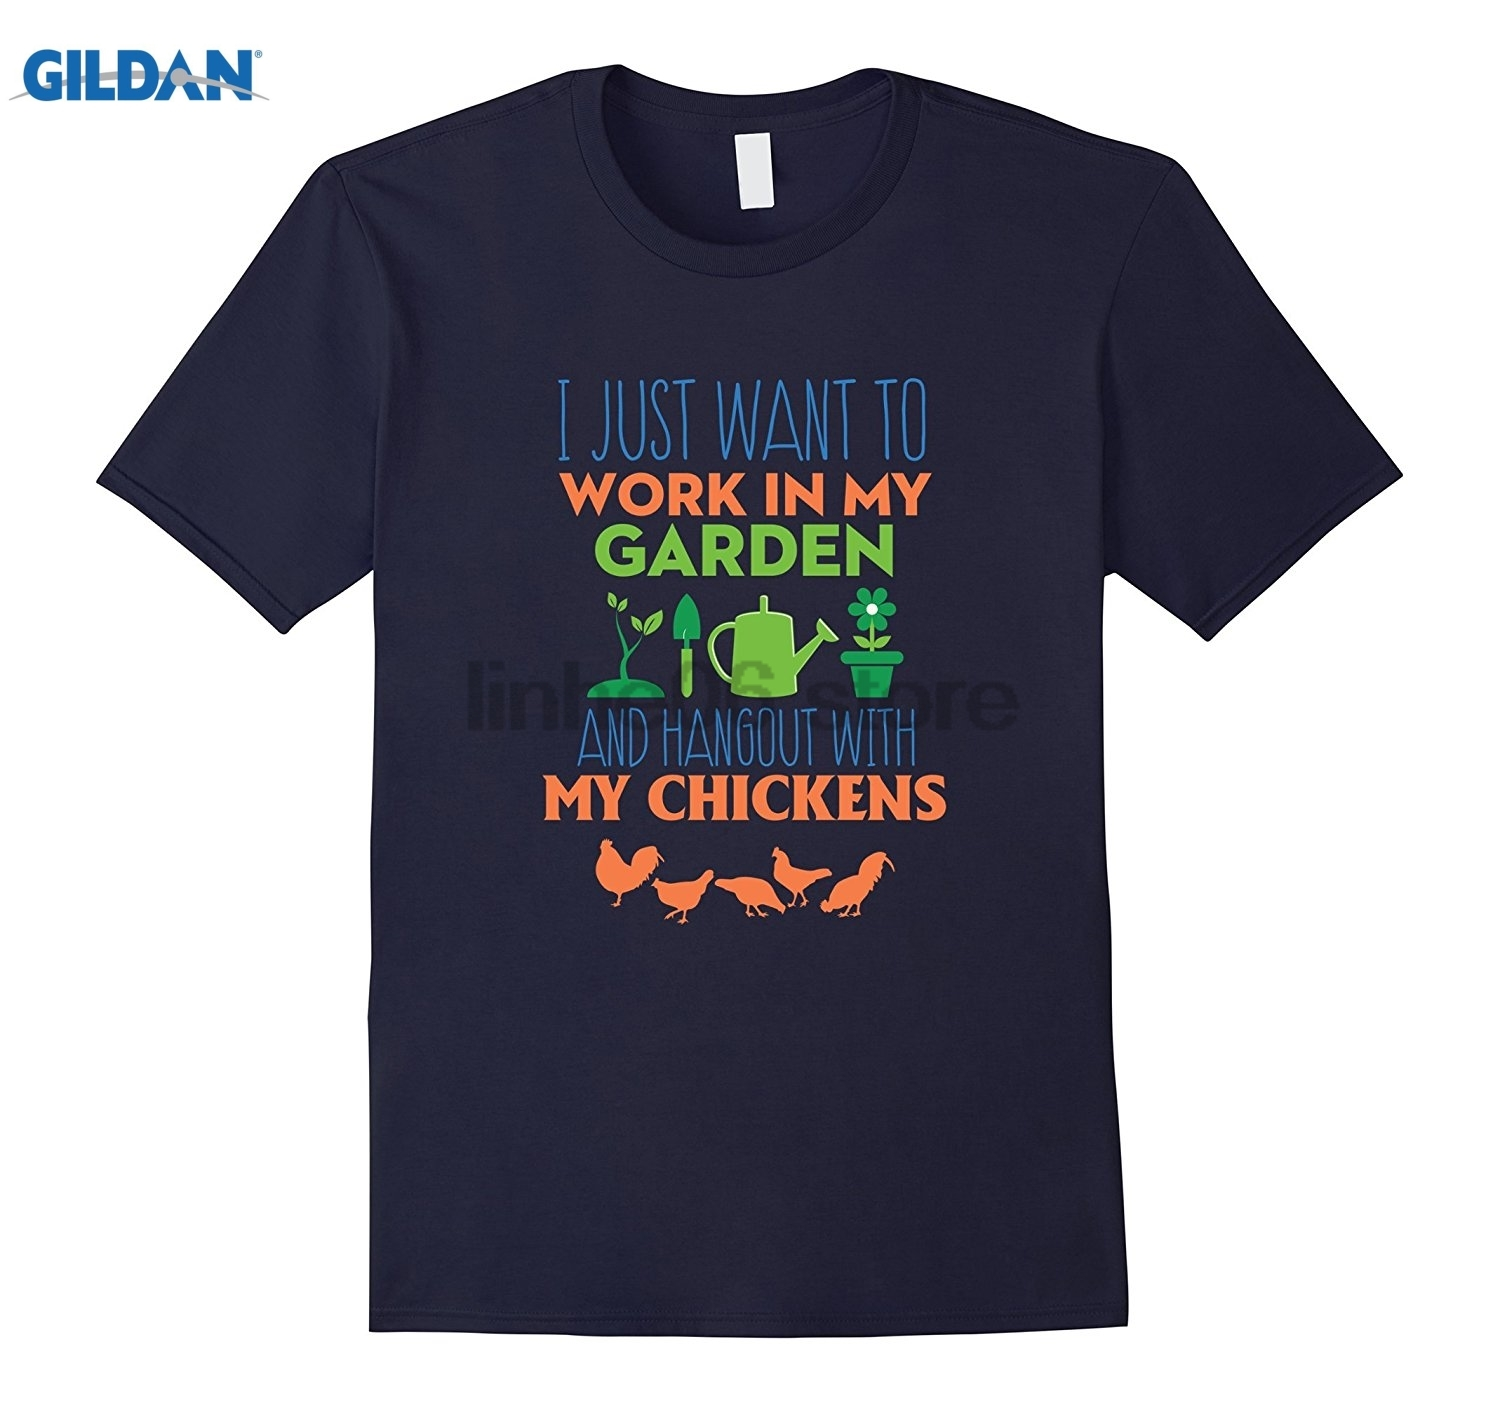 GILDAN Work in garden and hangout with my Chickens - Funny Shirt